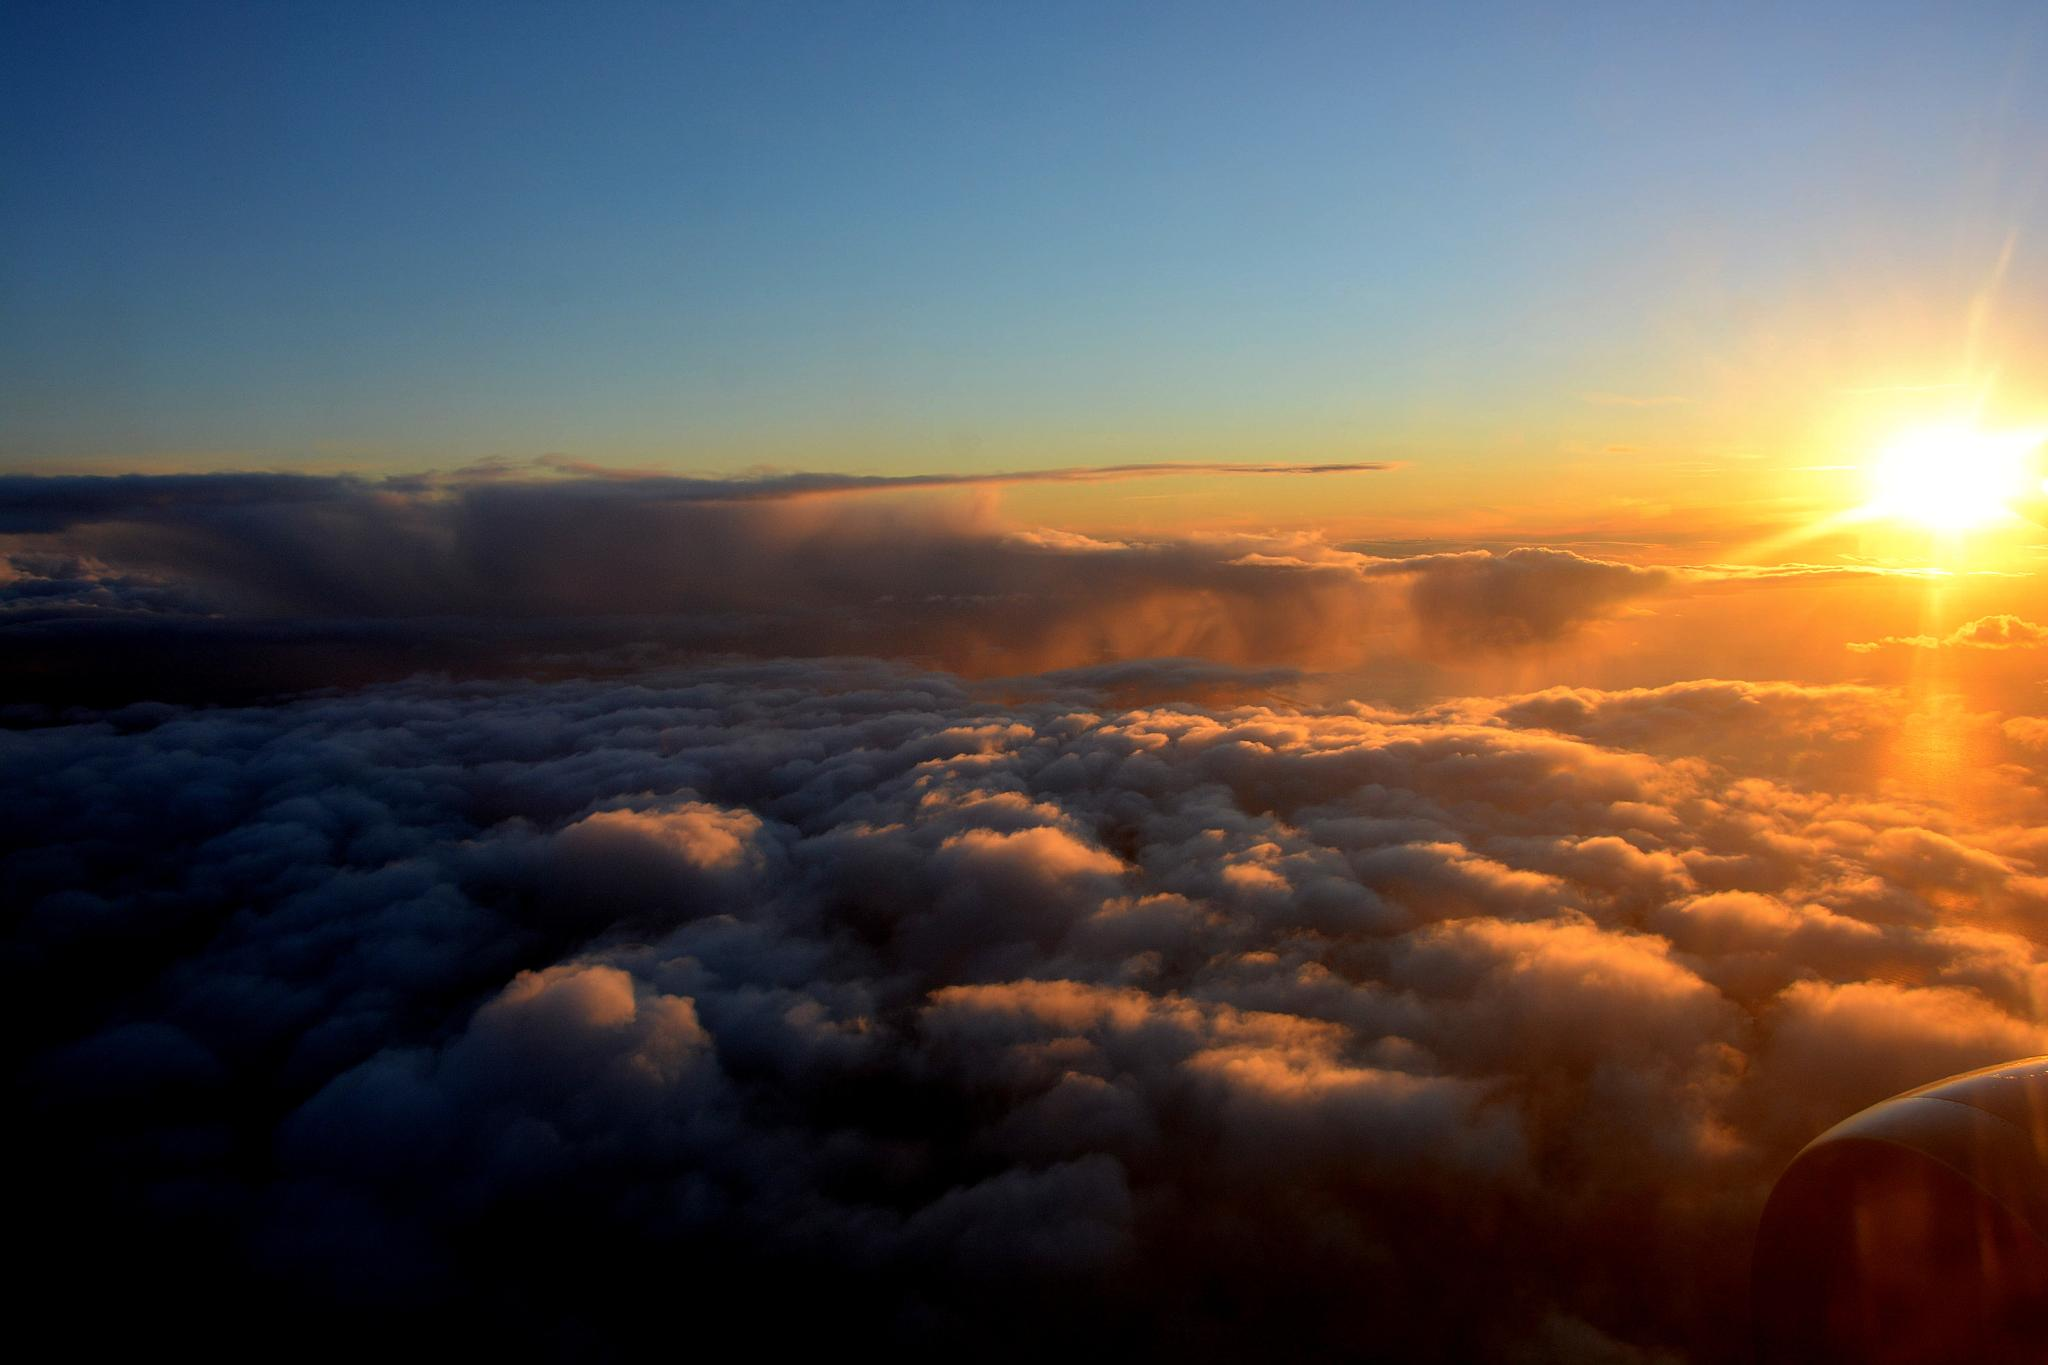 Above the Clouds by aaron.patterson.9889